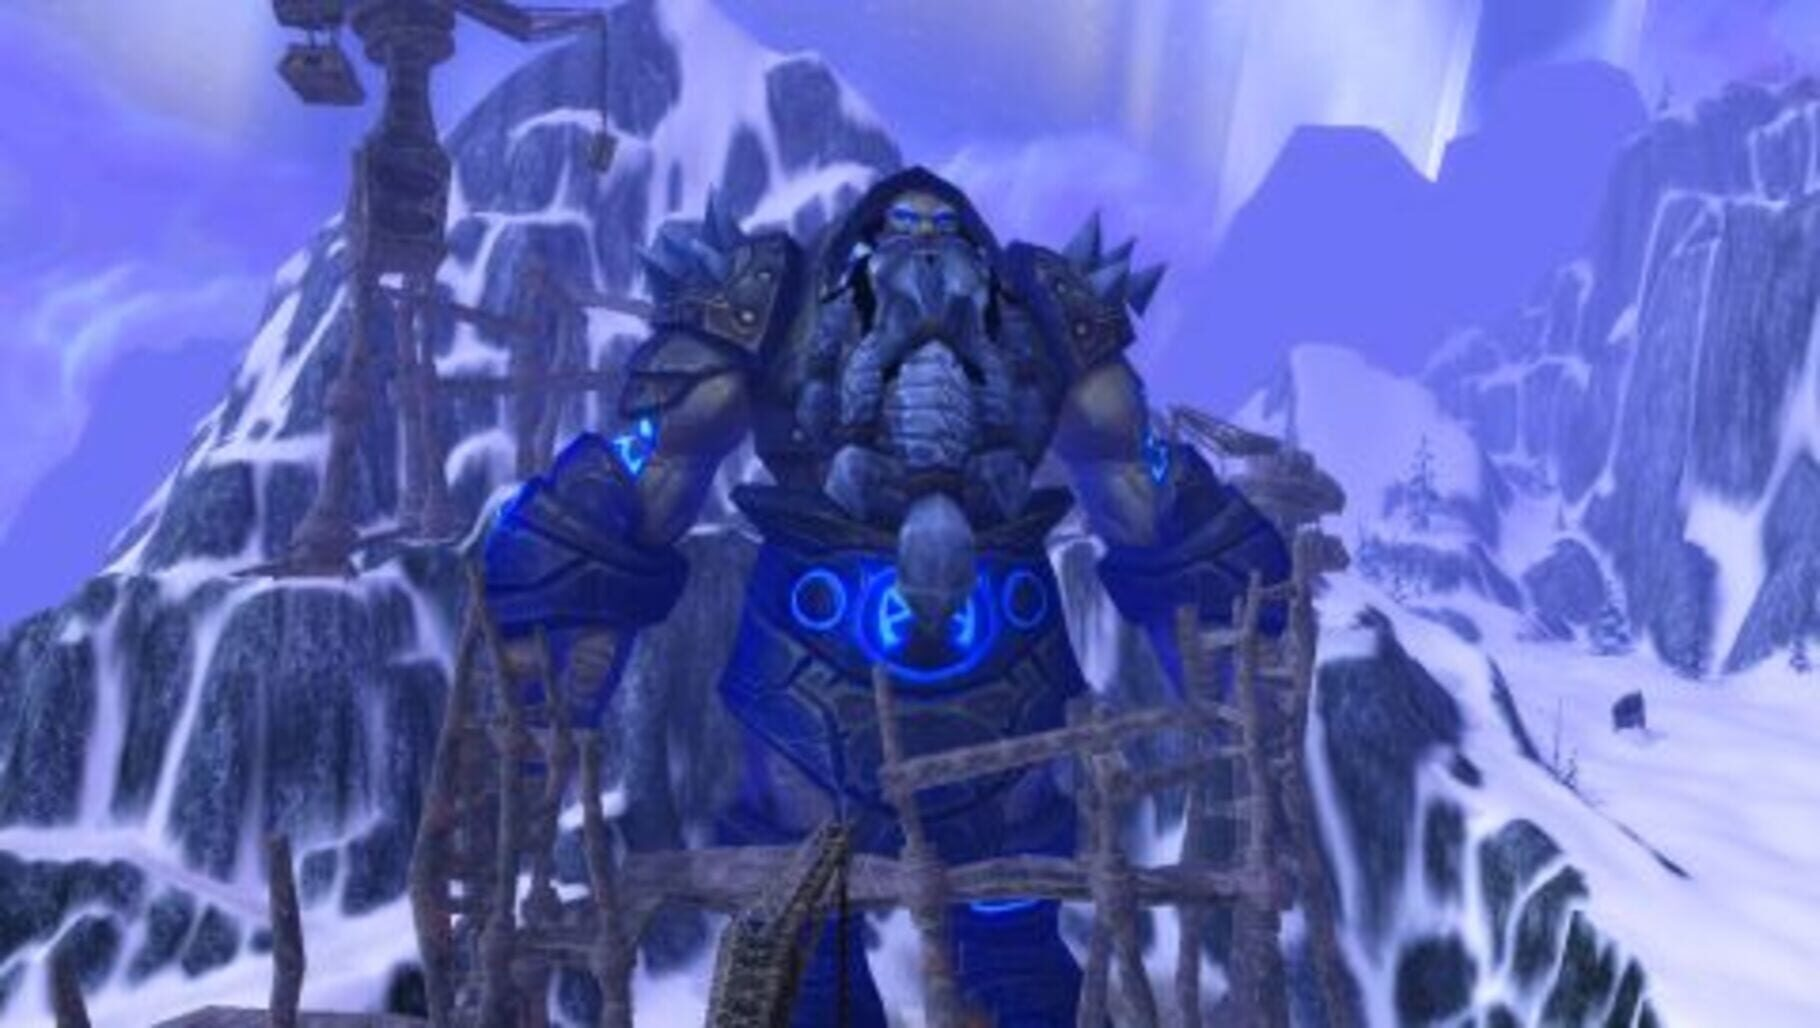 Gameplay Screenshot from World of Warcraft: Wrath of the Lich King